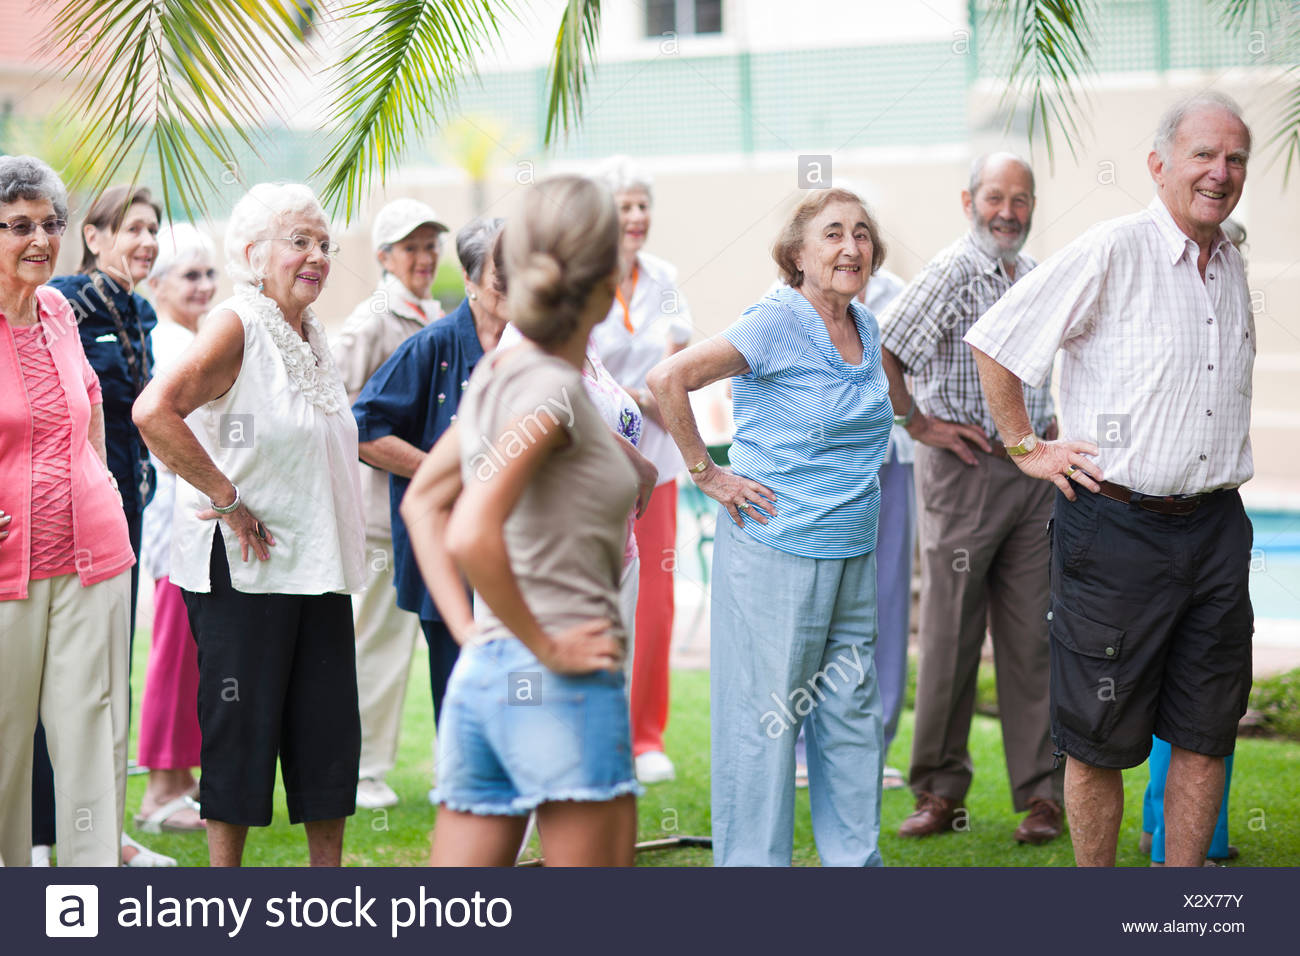 Large group of seniors exercising in retirement villa garden - Stock Image